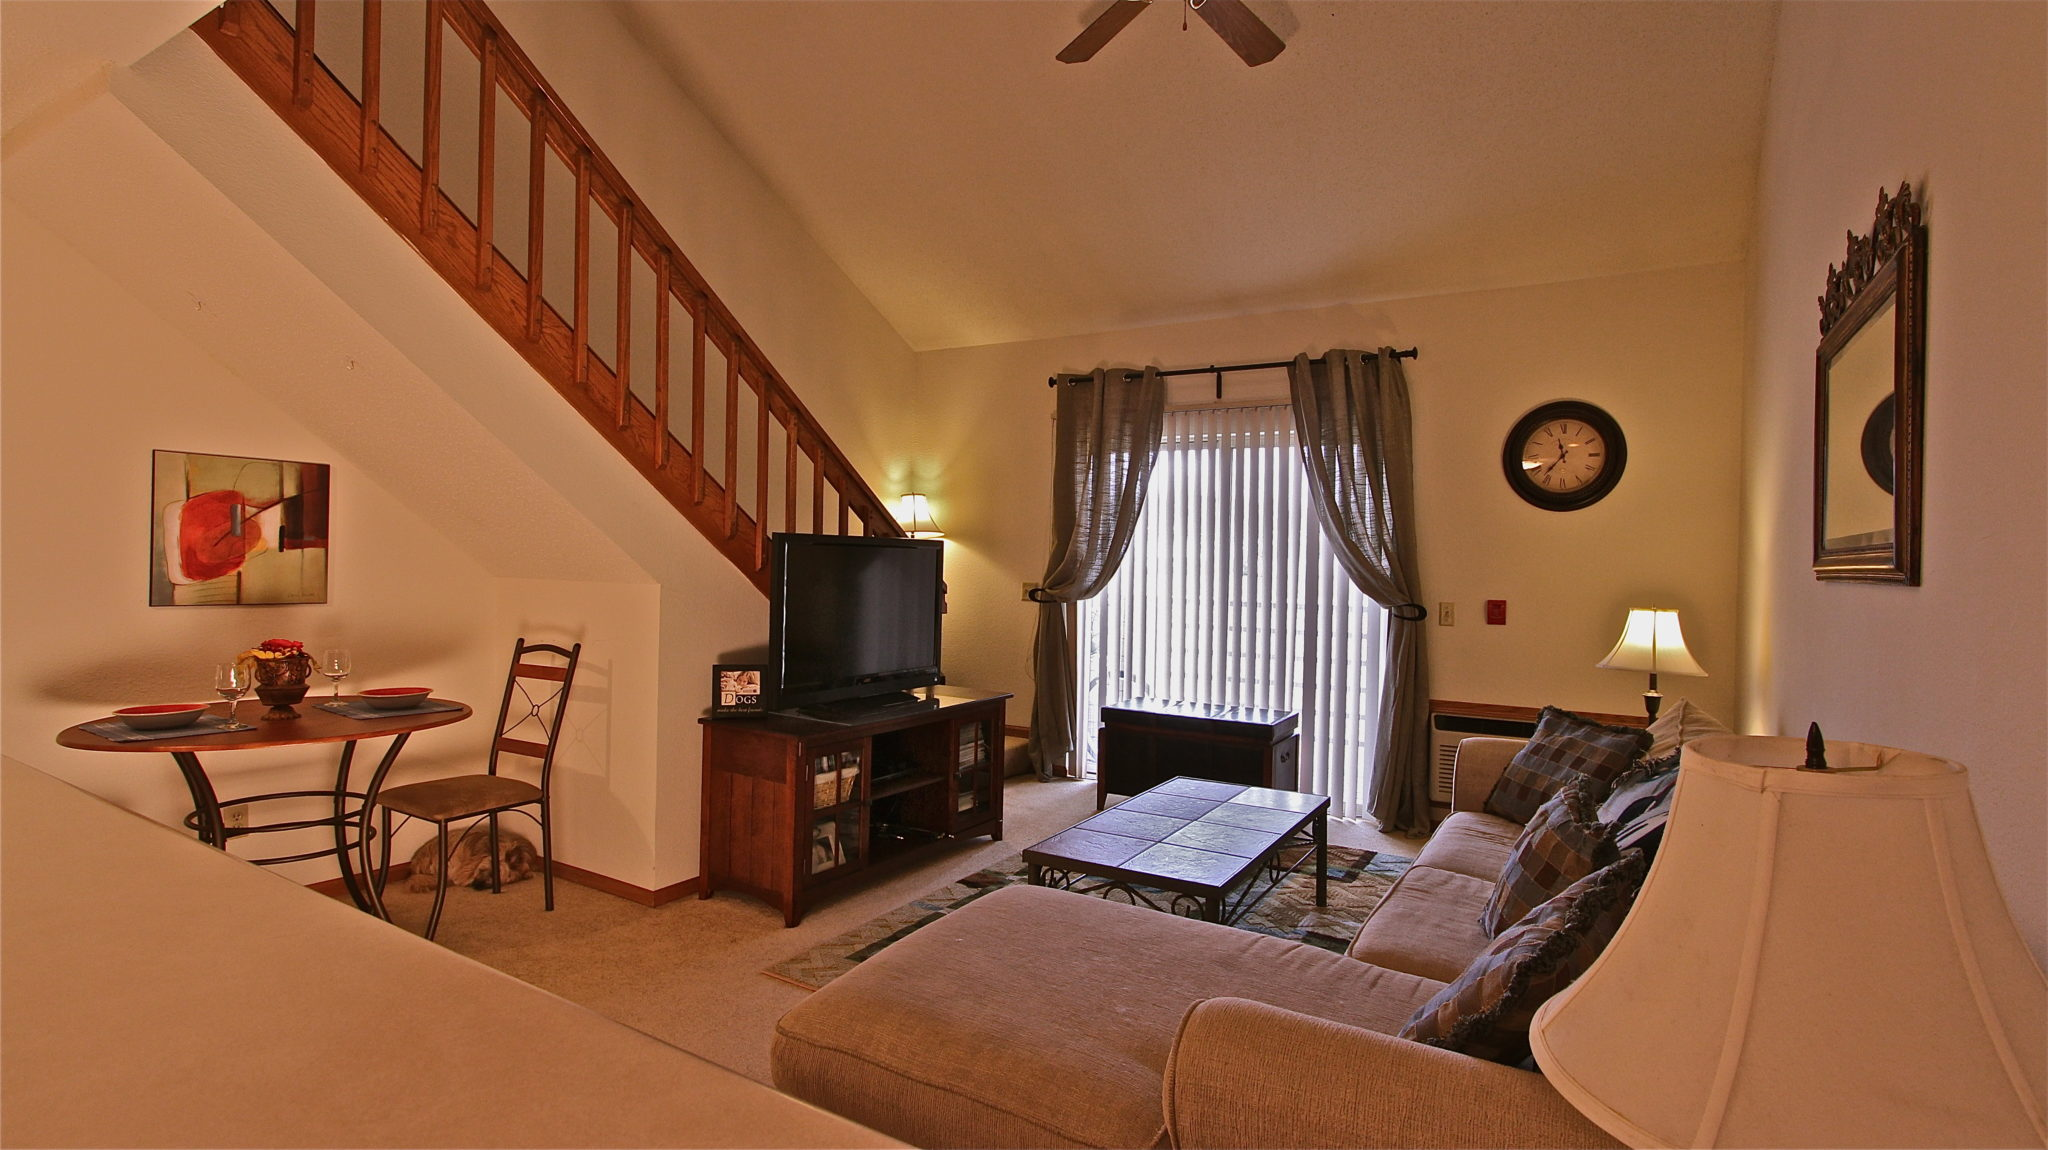 Franklin apartments for rent at fairway meadows in franklin wisconsin for 2 bedroom apartments wauwatosa wi